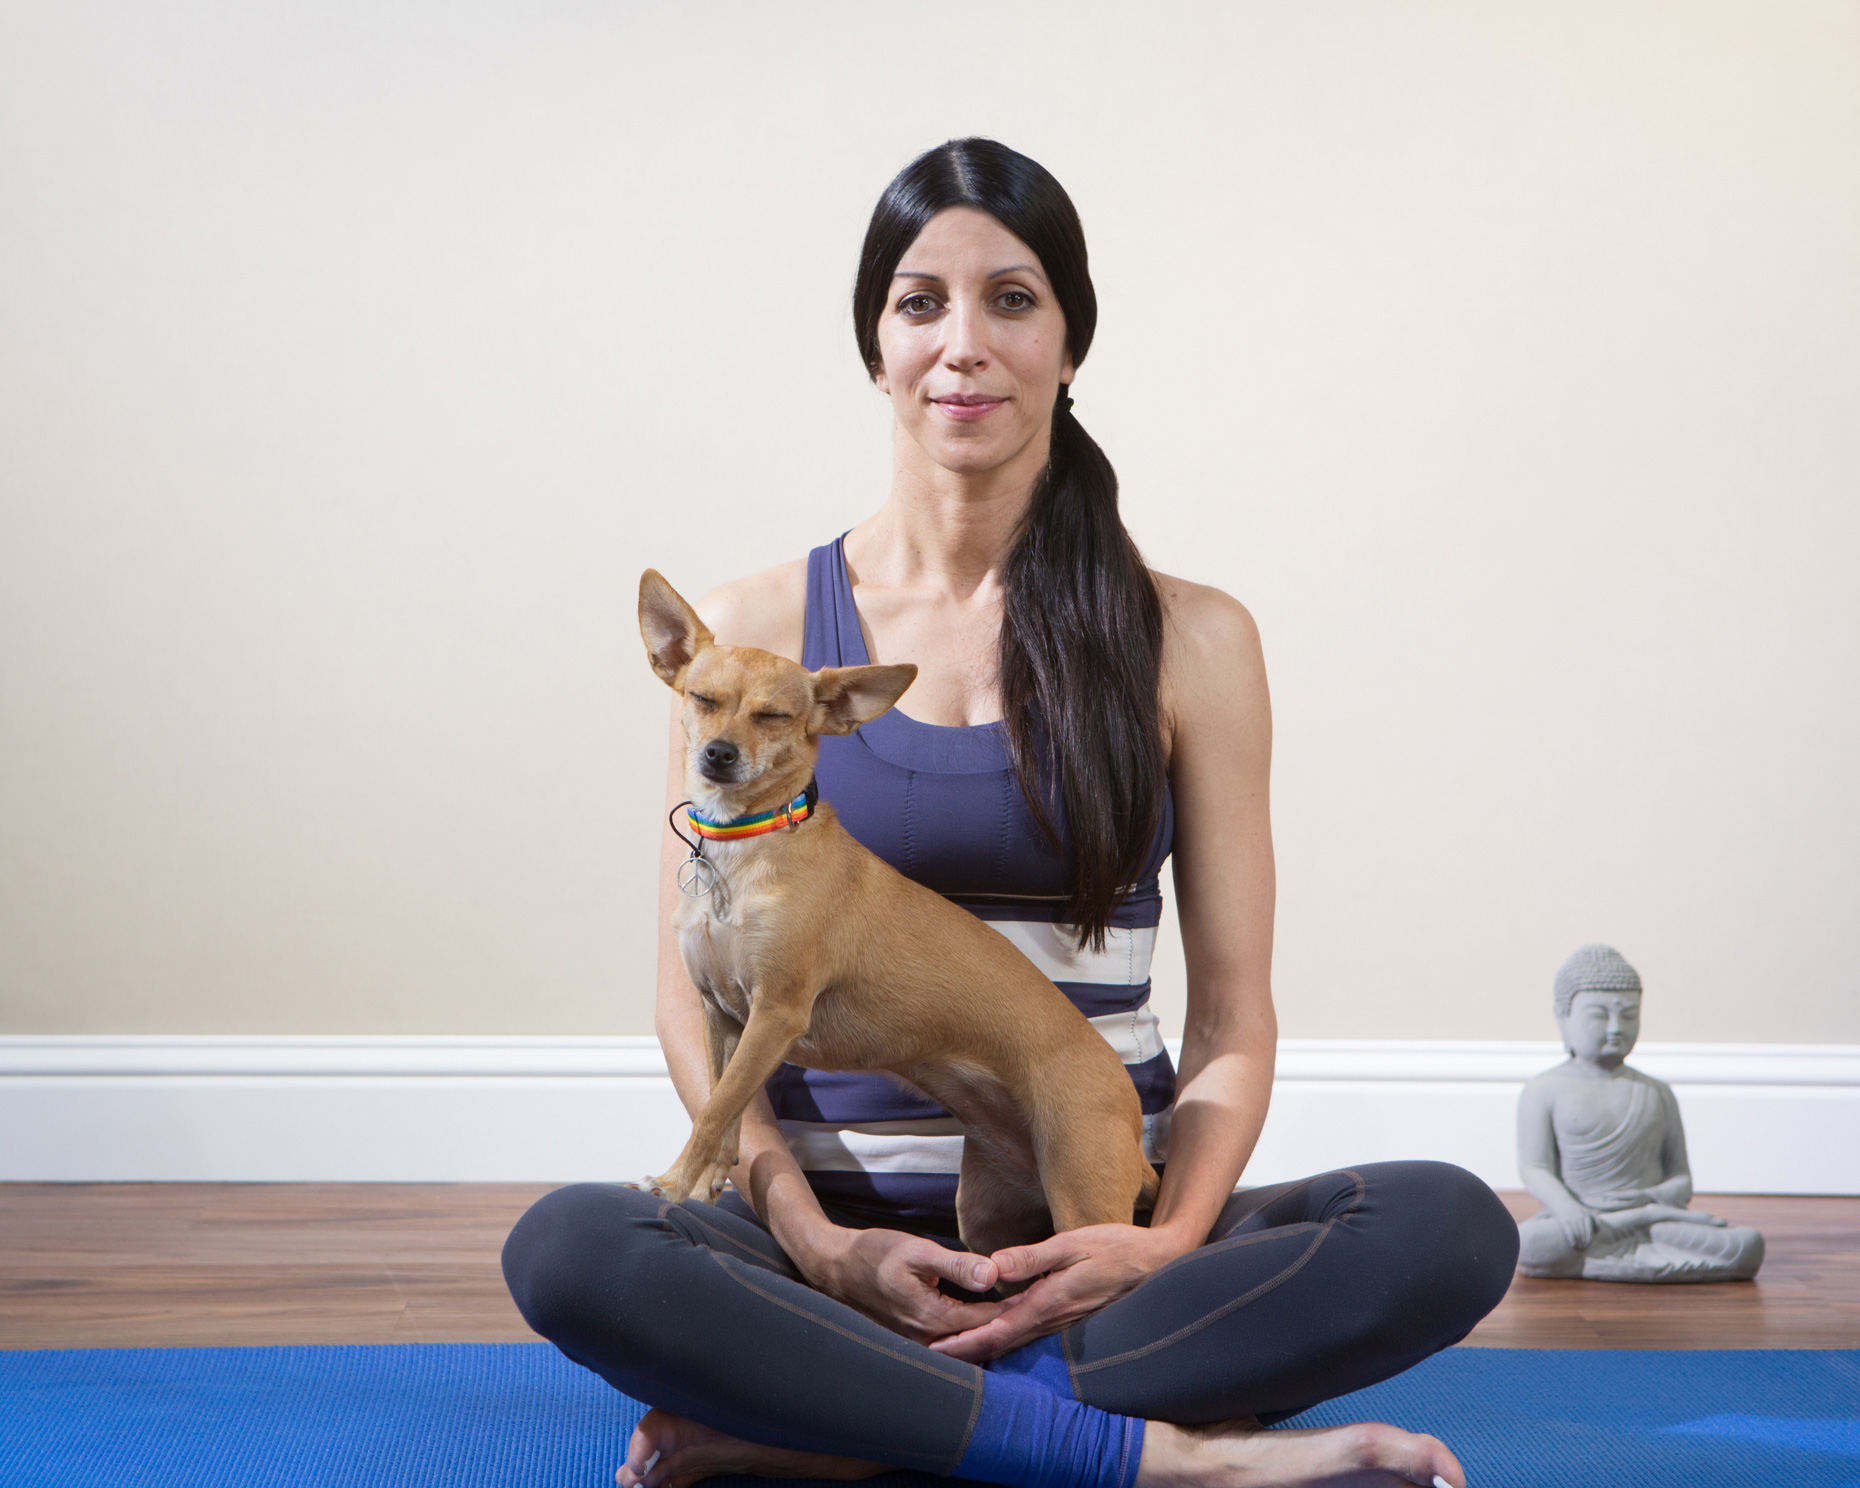 Dog Lifestyle Photography | Chihuahua with Yoga Woman by Mark Rogers